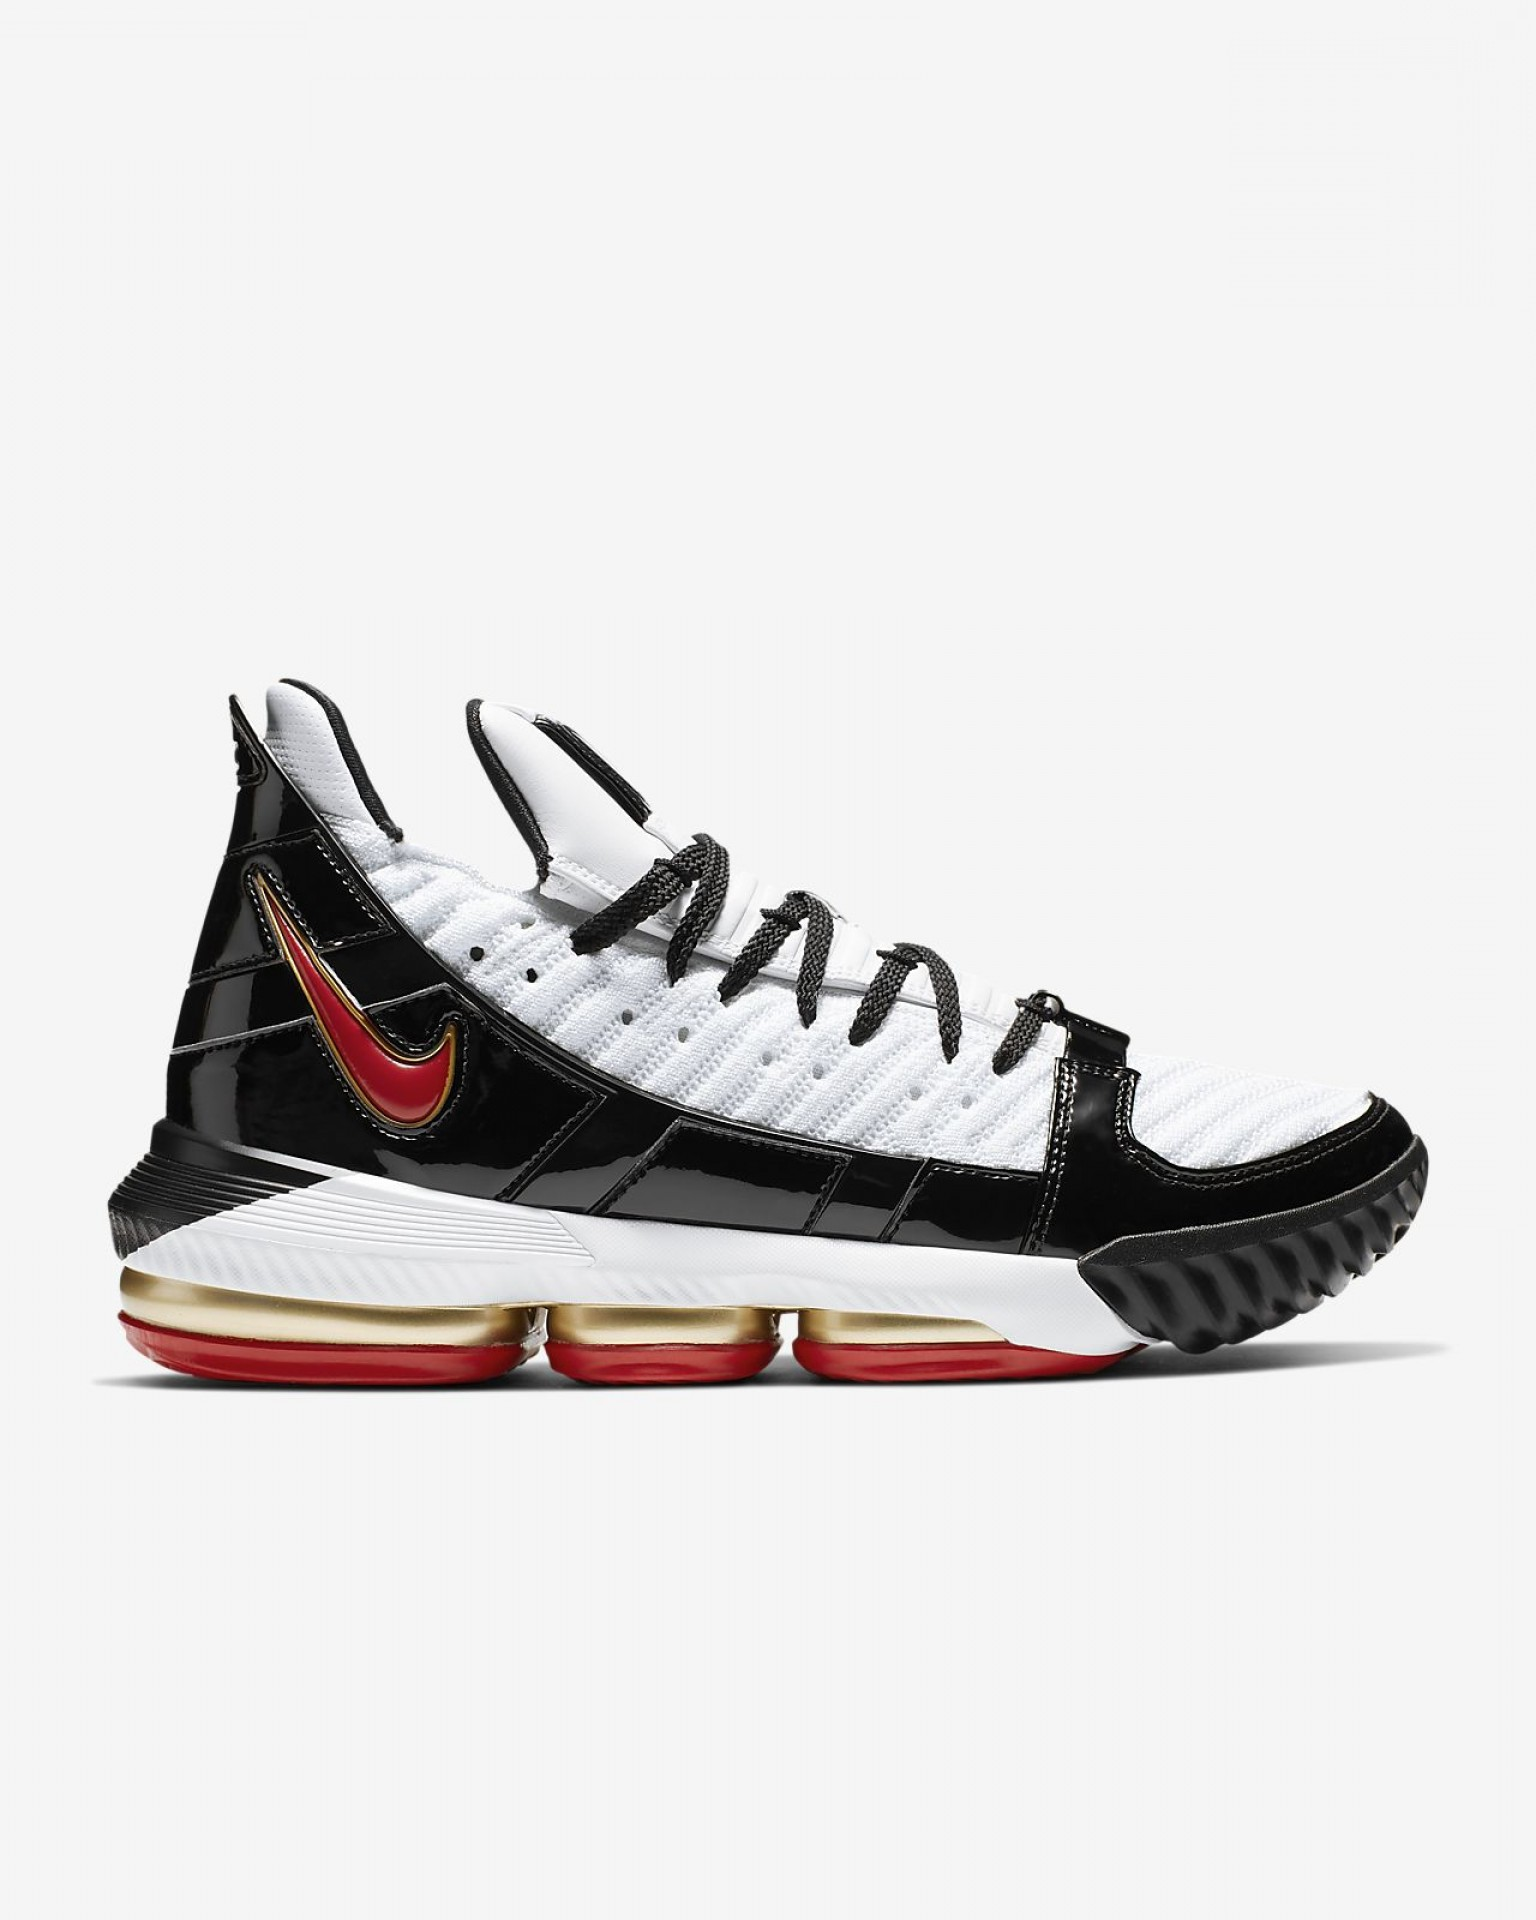 Lebron Shoe Vector.